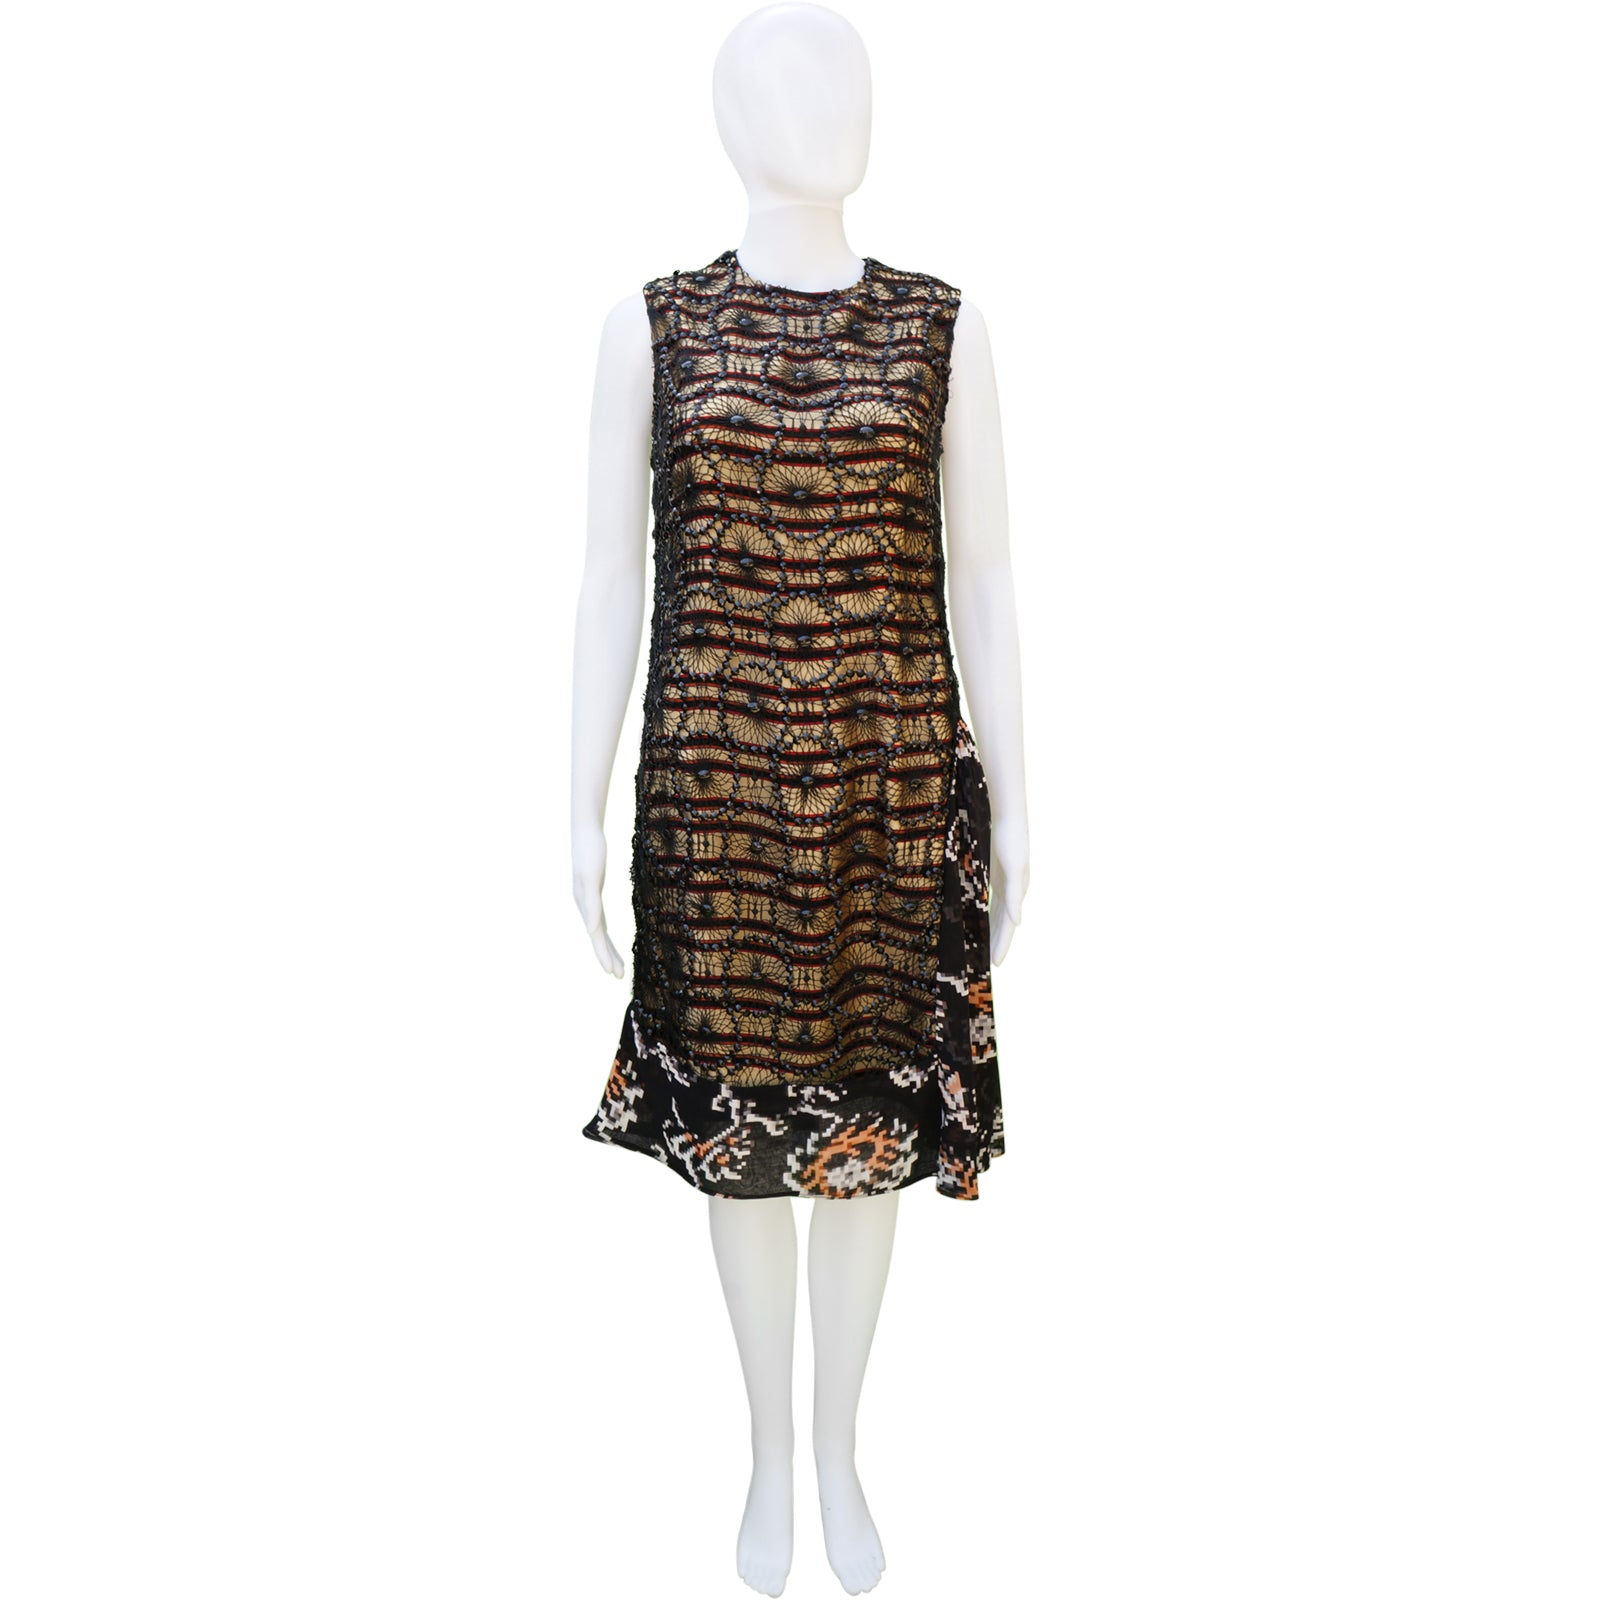 609b847802 DRIES VAN NOTEN SEQUIN OVERLAY DRESS Shop online the best value on  authentic designer used preowned ...